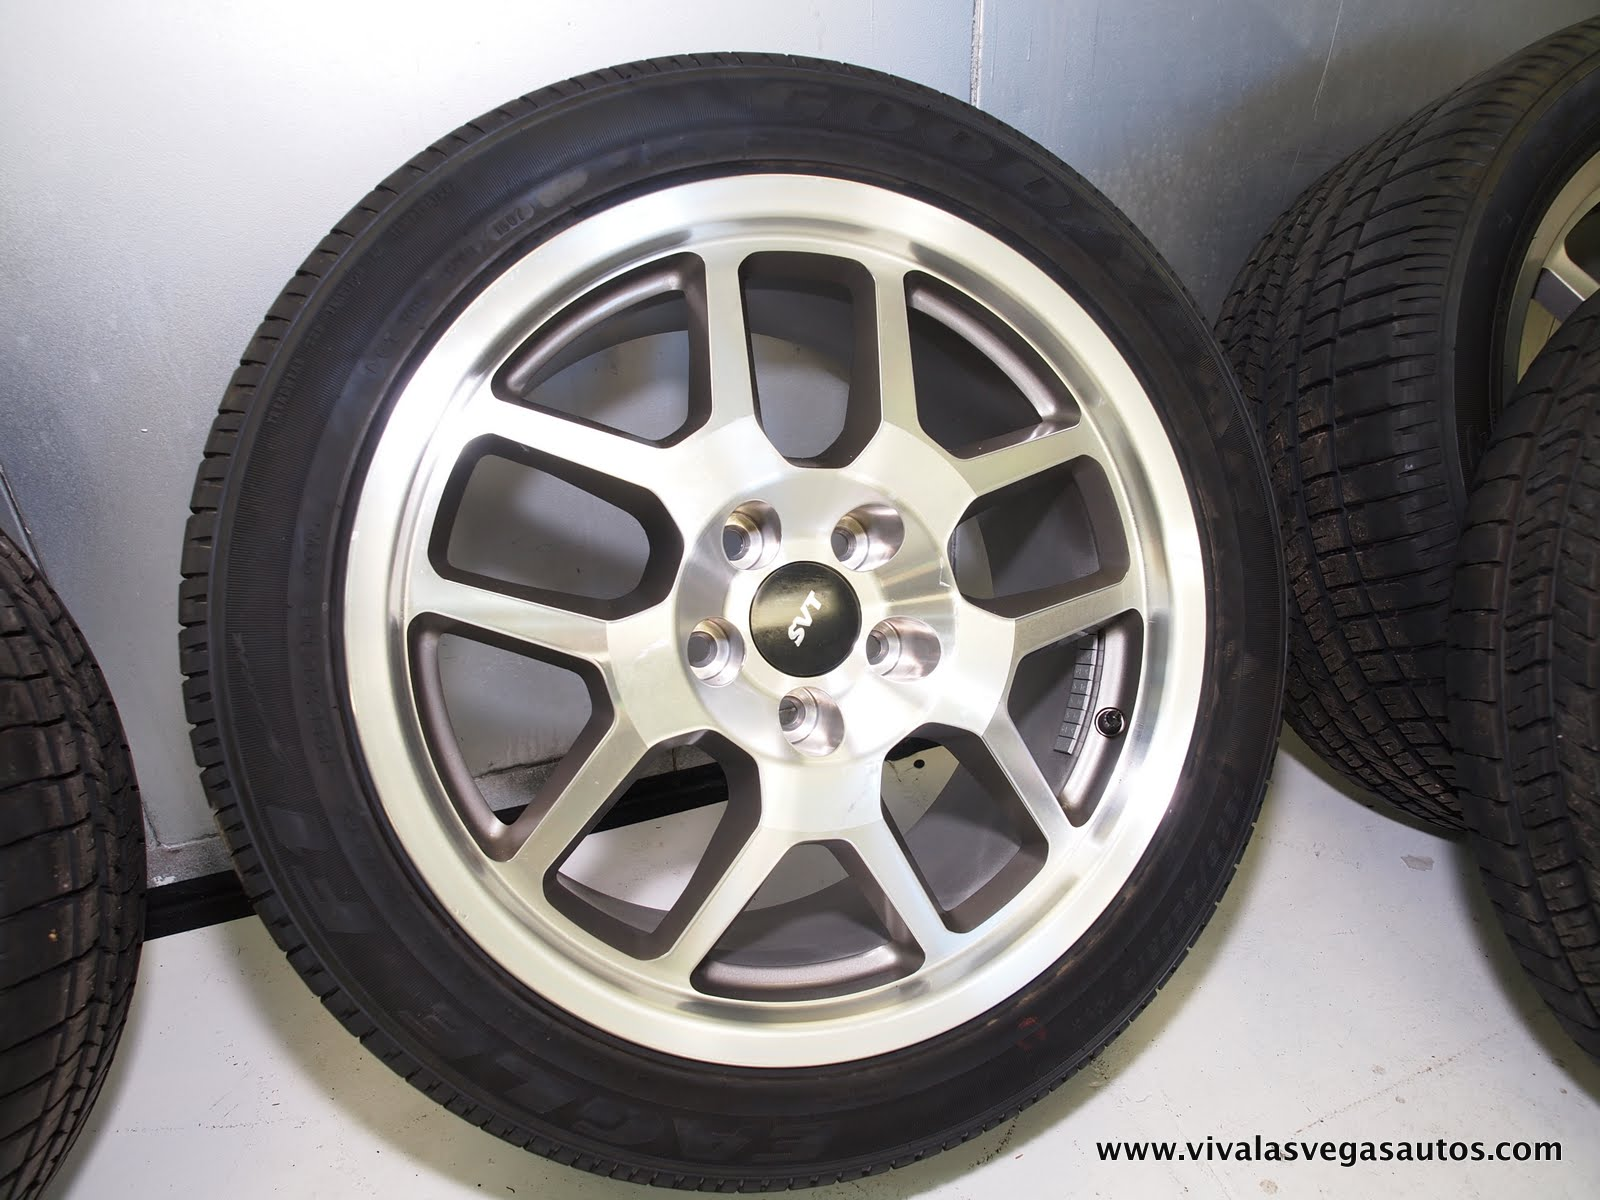 18 Inch Tires >> For Sale: SVT MUSTANG WHEELS and TIRES